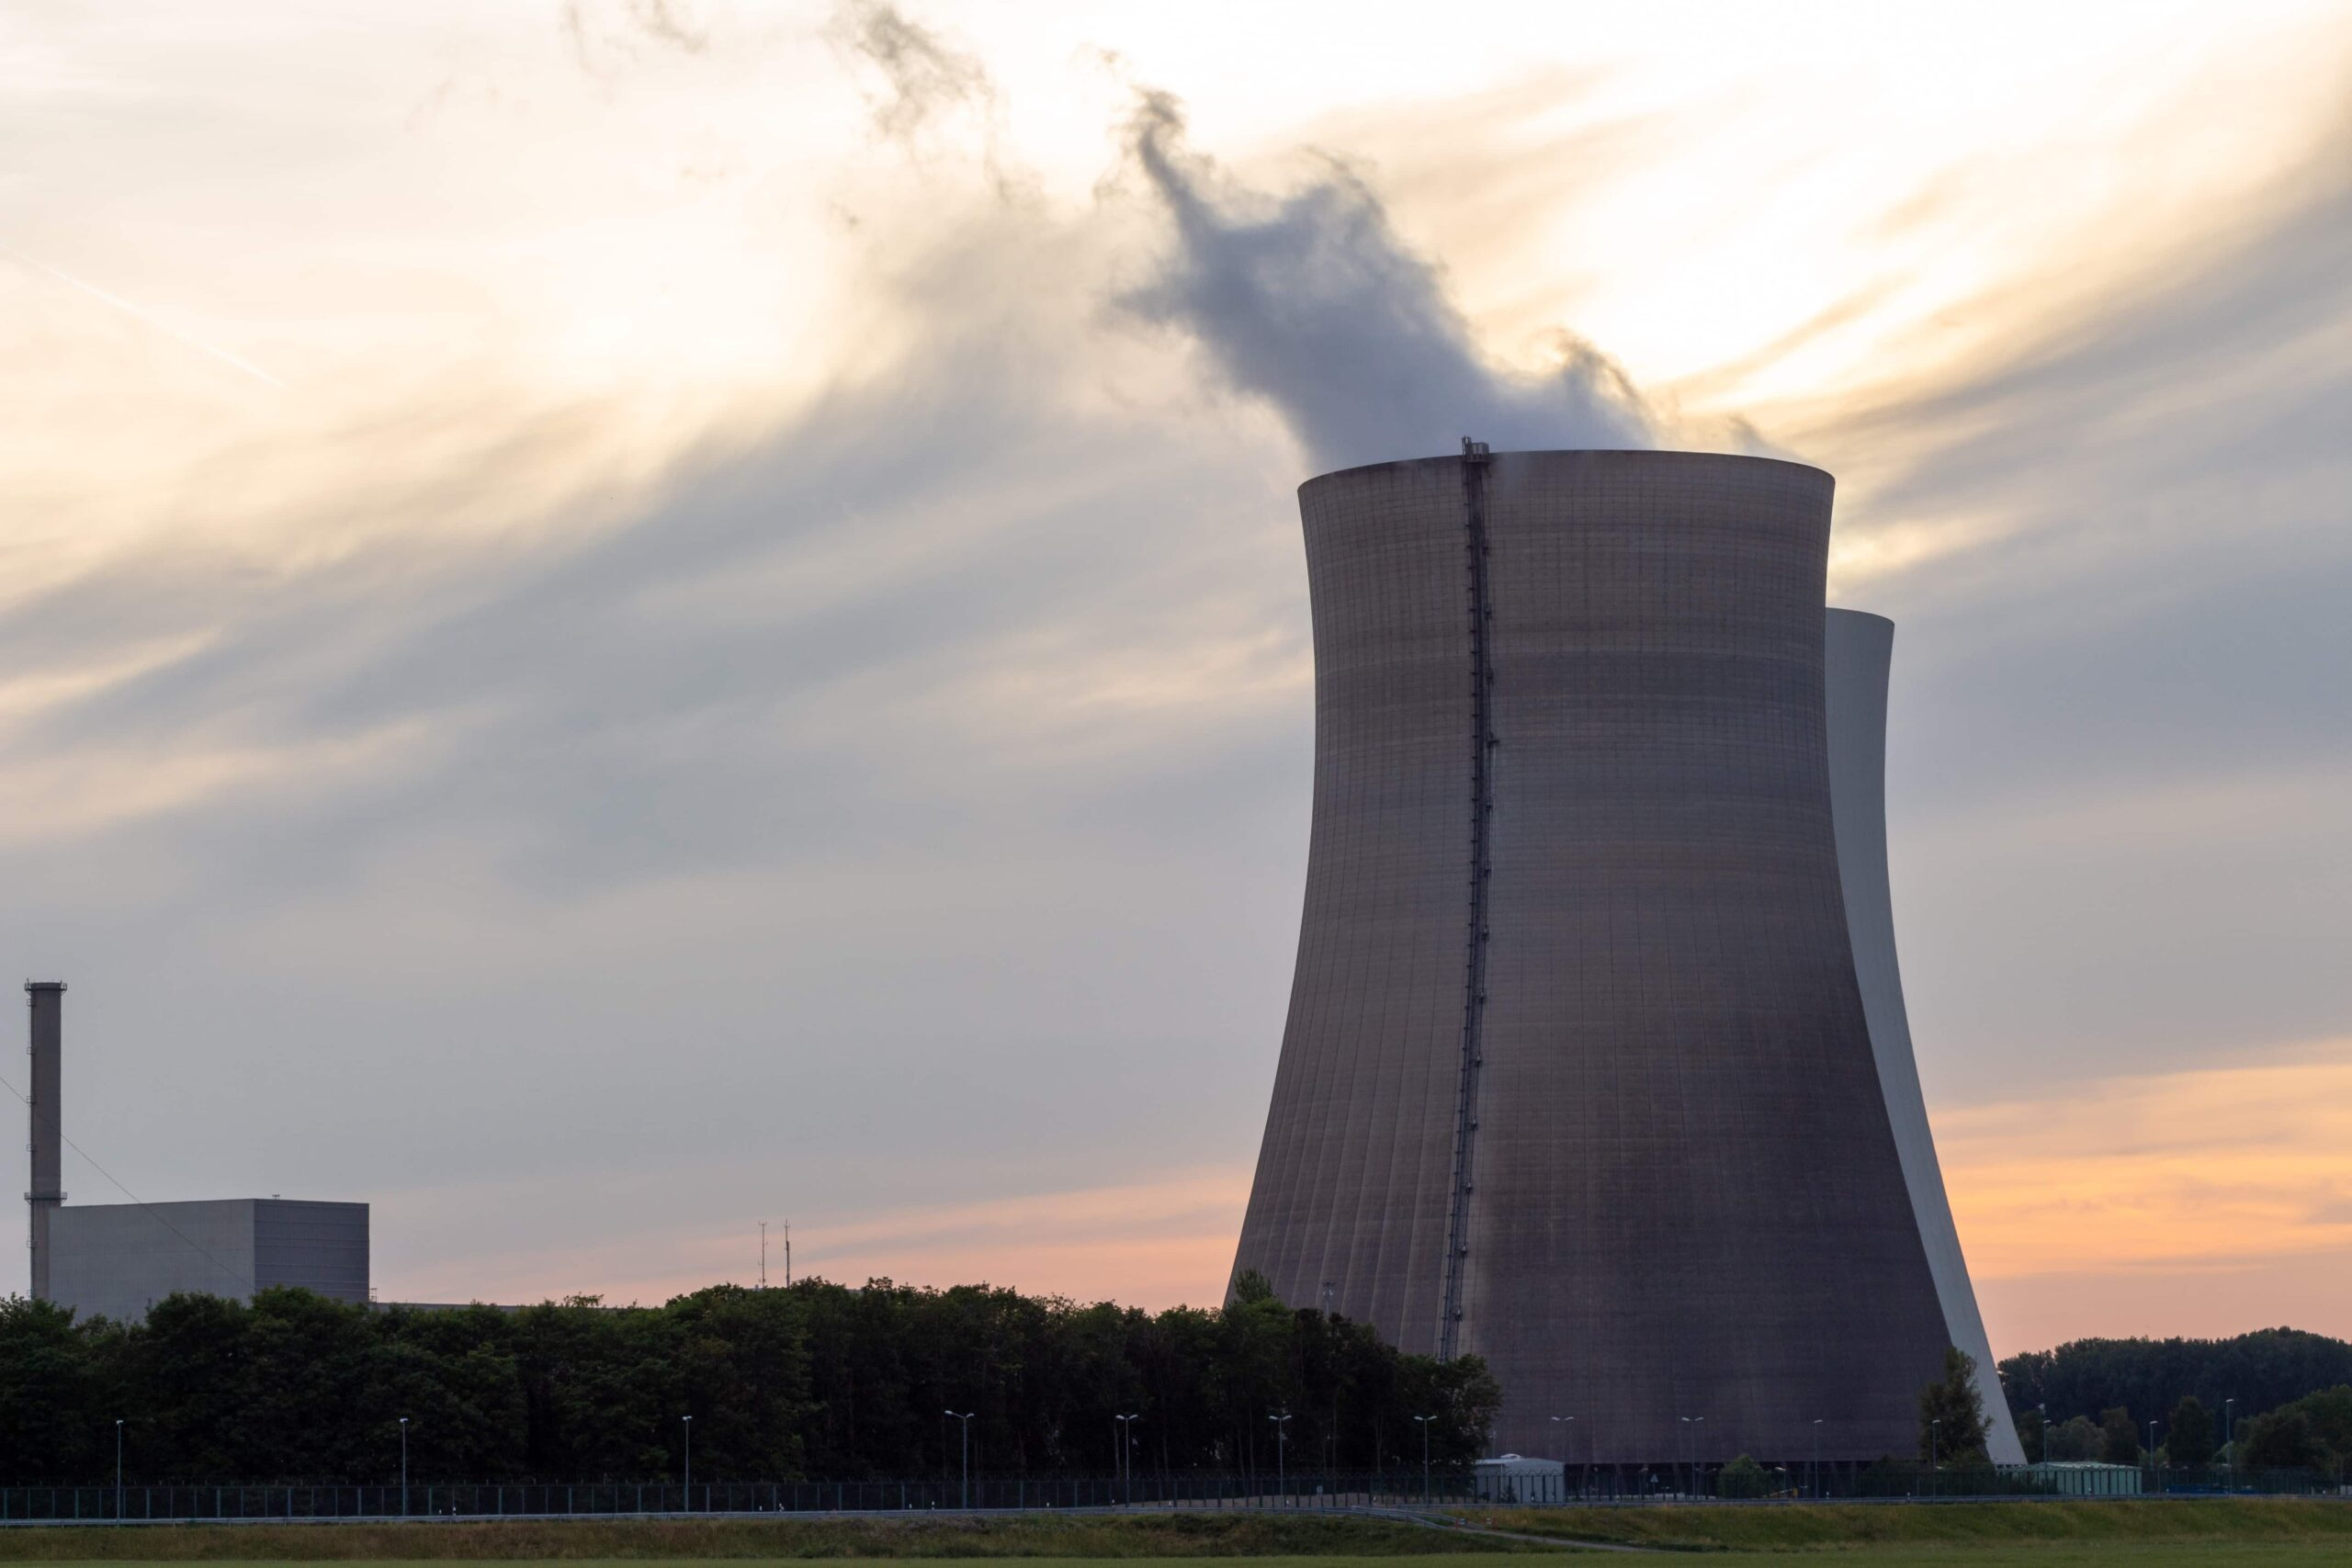 Coal Plants Cause Thousands of Deaths in Eastern Europe - CET